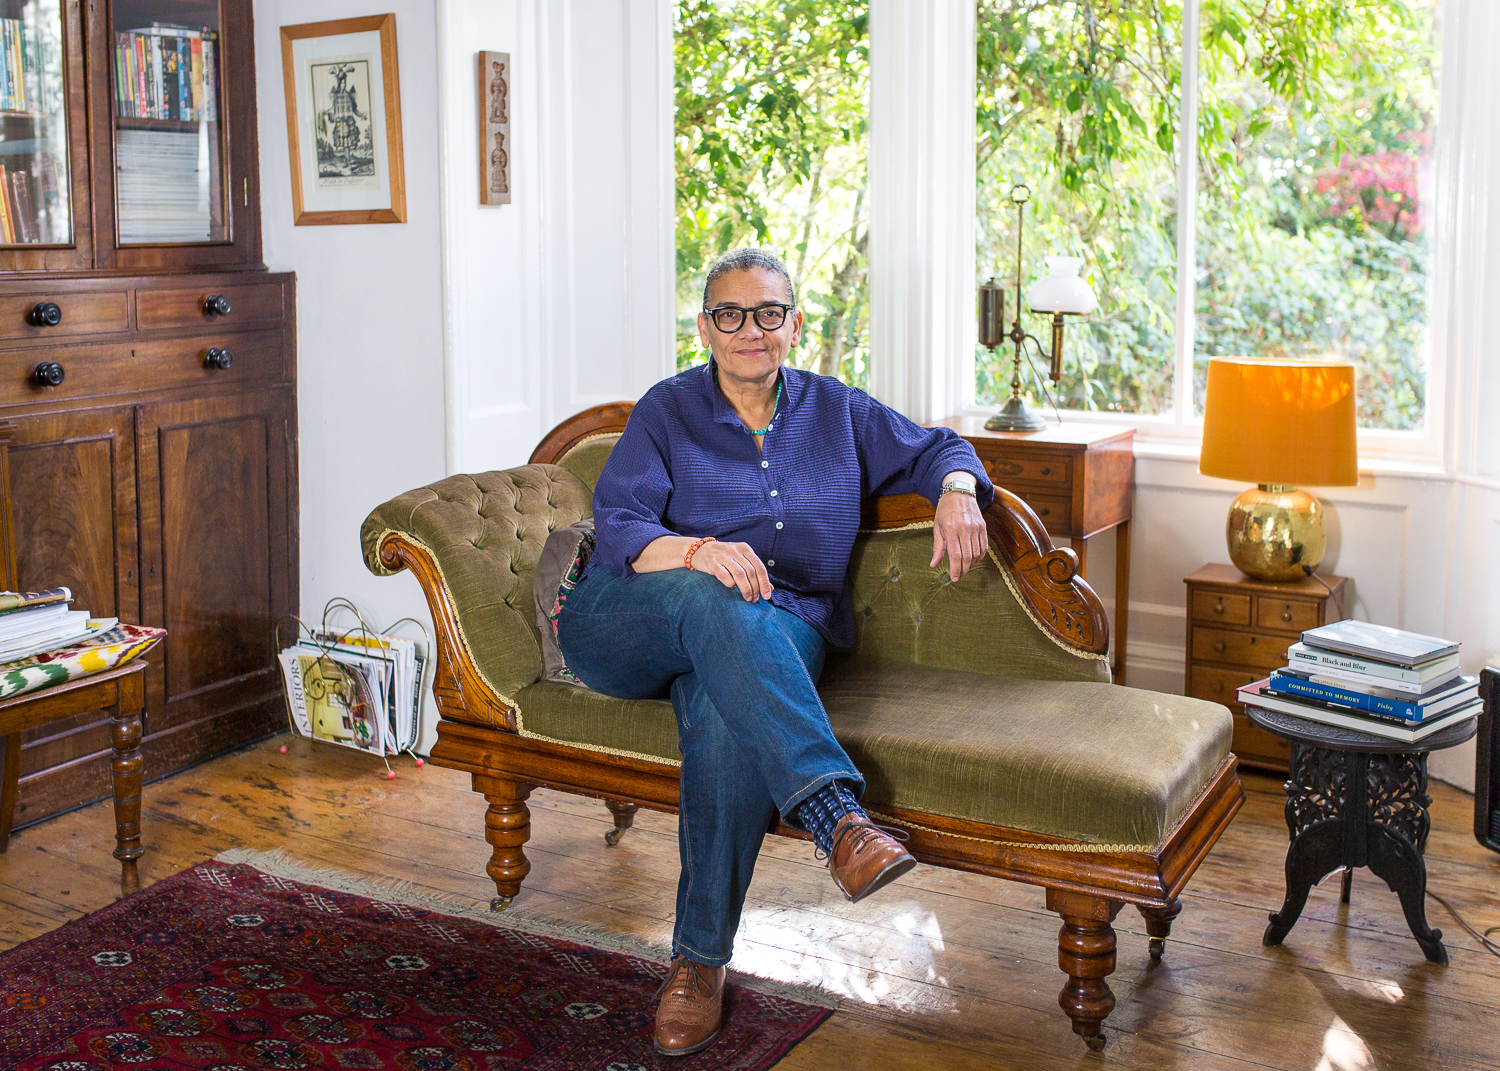 """Lubaina Himid MBE. """"Random Coincidence""""- October 2018. - Turner Prize winner Lubaina Himid creating her most recent artworks """"Random Coincidence"""".This work comes in response to a week Lubaina spent as artist in residence at The Guardian.Random Coincidence was unveiled by the artist on 23rd November 2018 at the Liverpool Central Library.Photography commissioned by RRUNEWS Liverpool."""